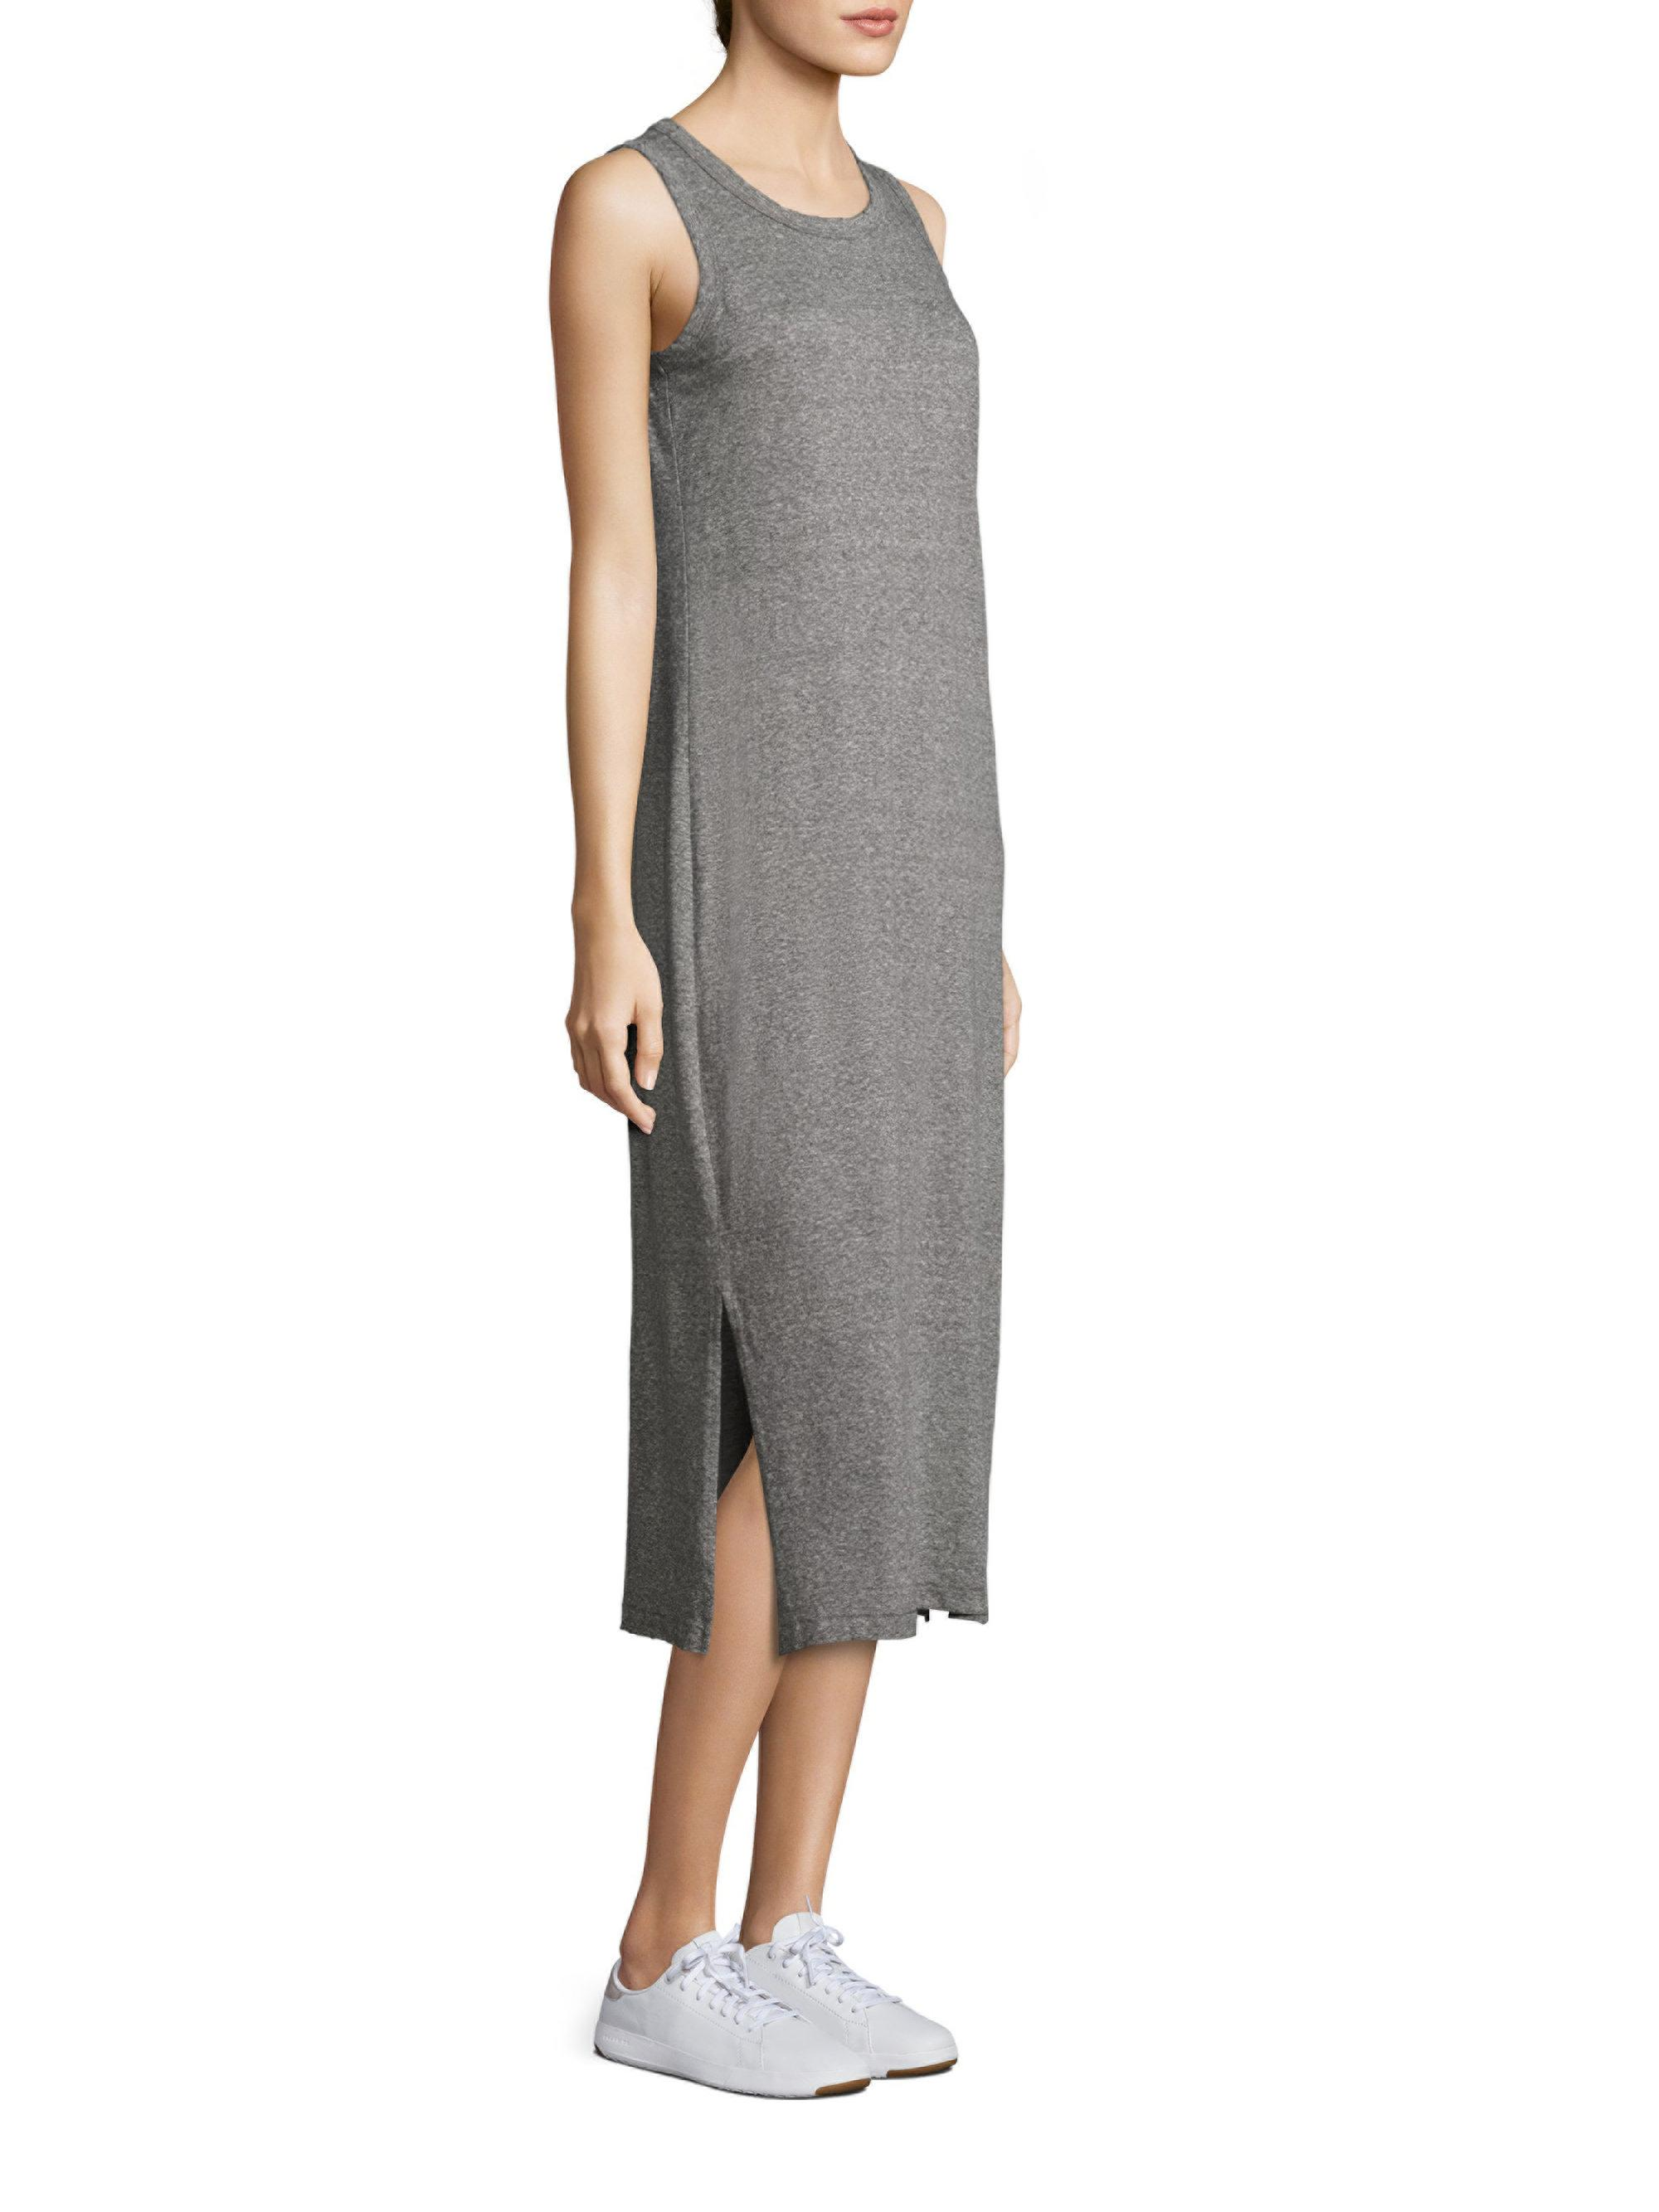 1659f3d5eeedbe Lyst - Current Elliott The Perfect Muscle Tee Dress in Gray